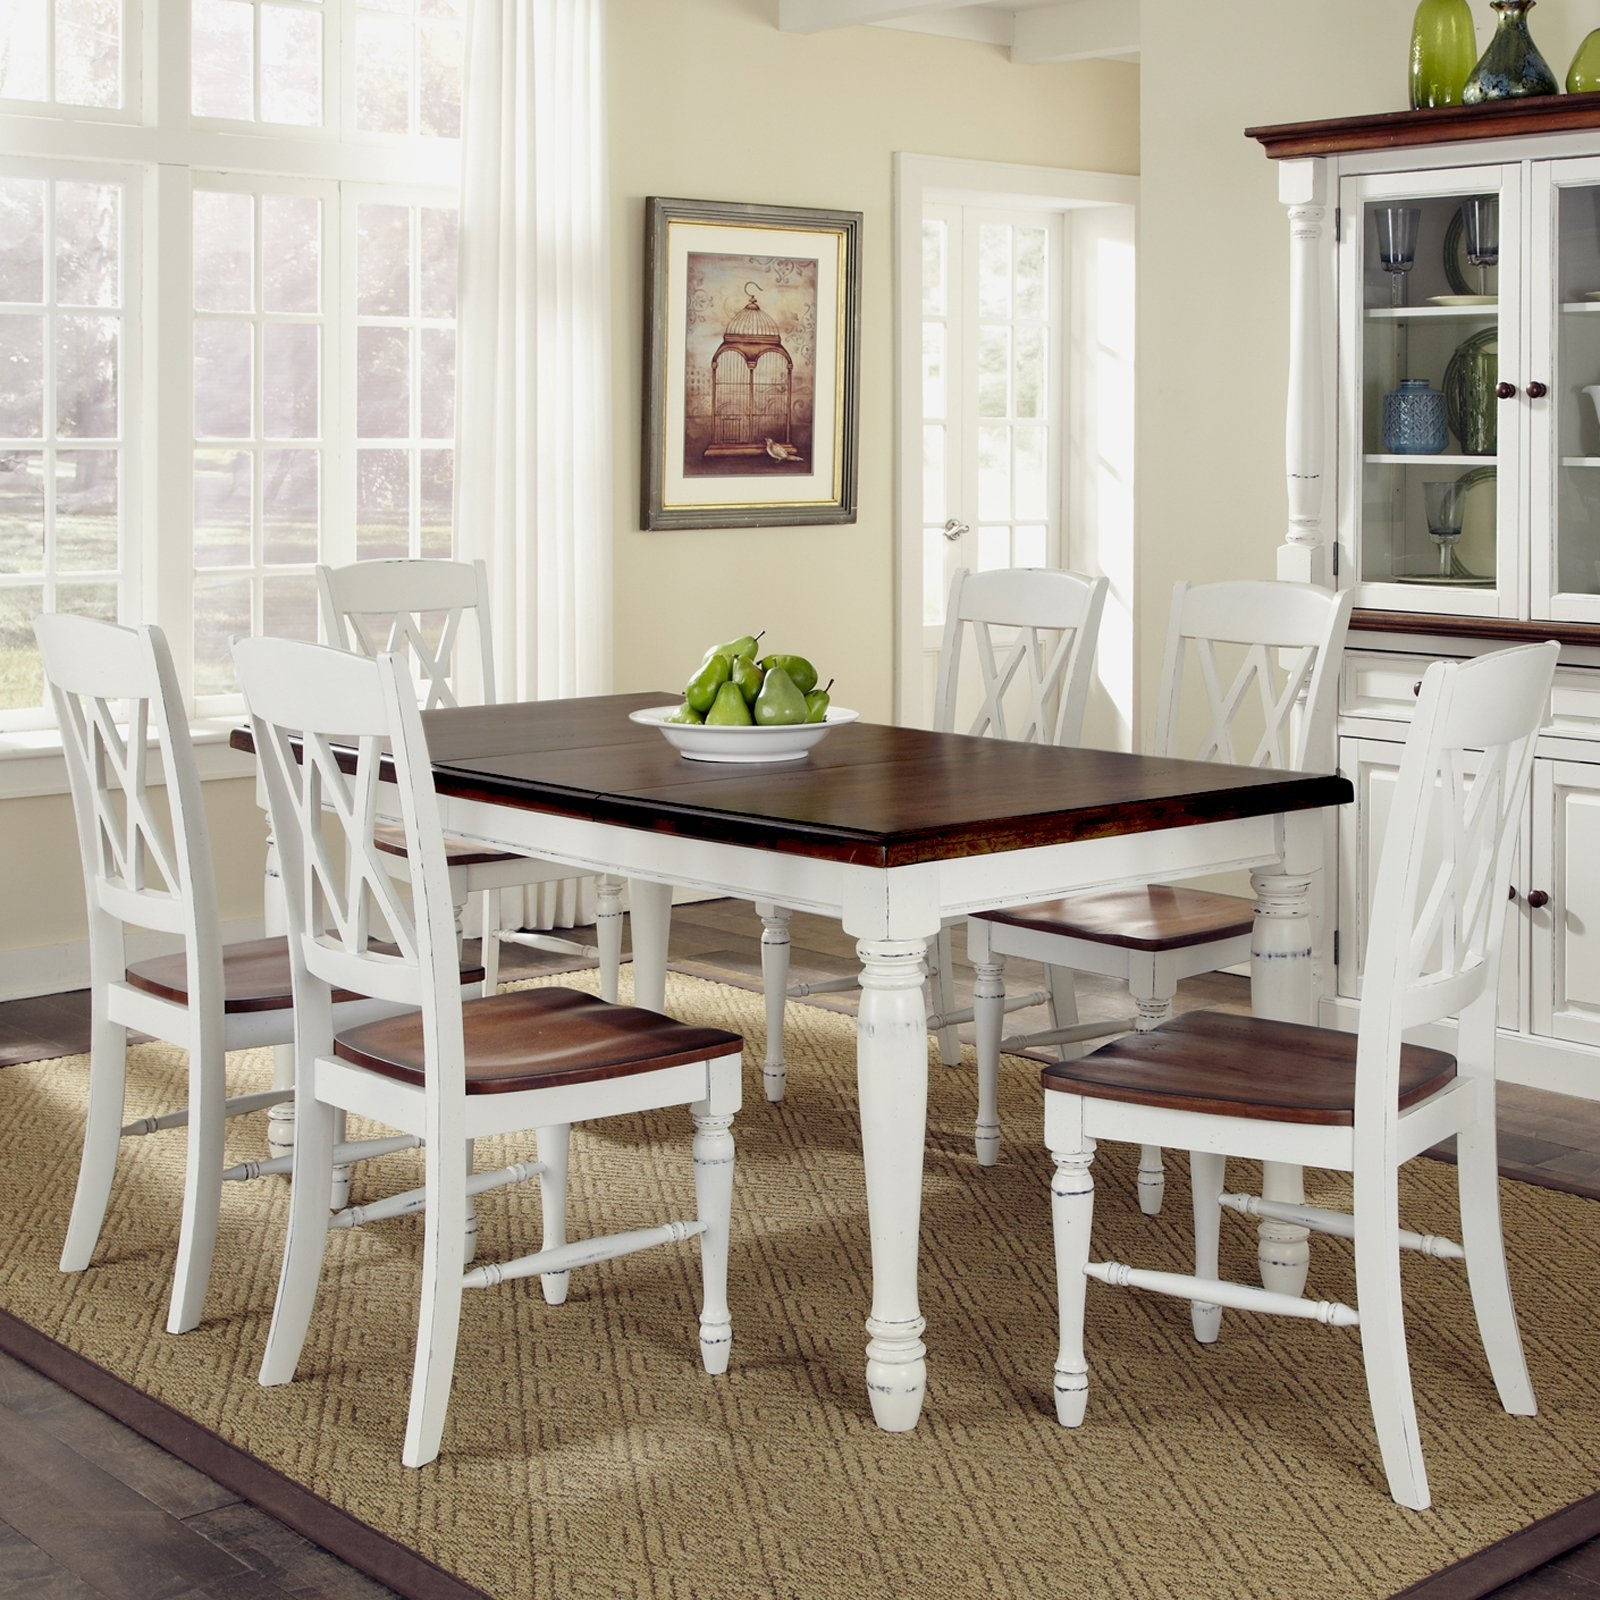 Home Styles Monarch Rectangular Dining Table And 6 Double X-Back regarding Most Up-to-Date Dining Table Chair Sets